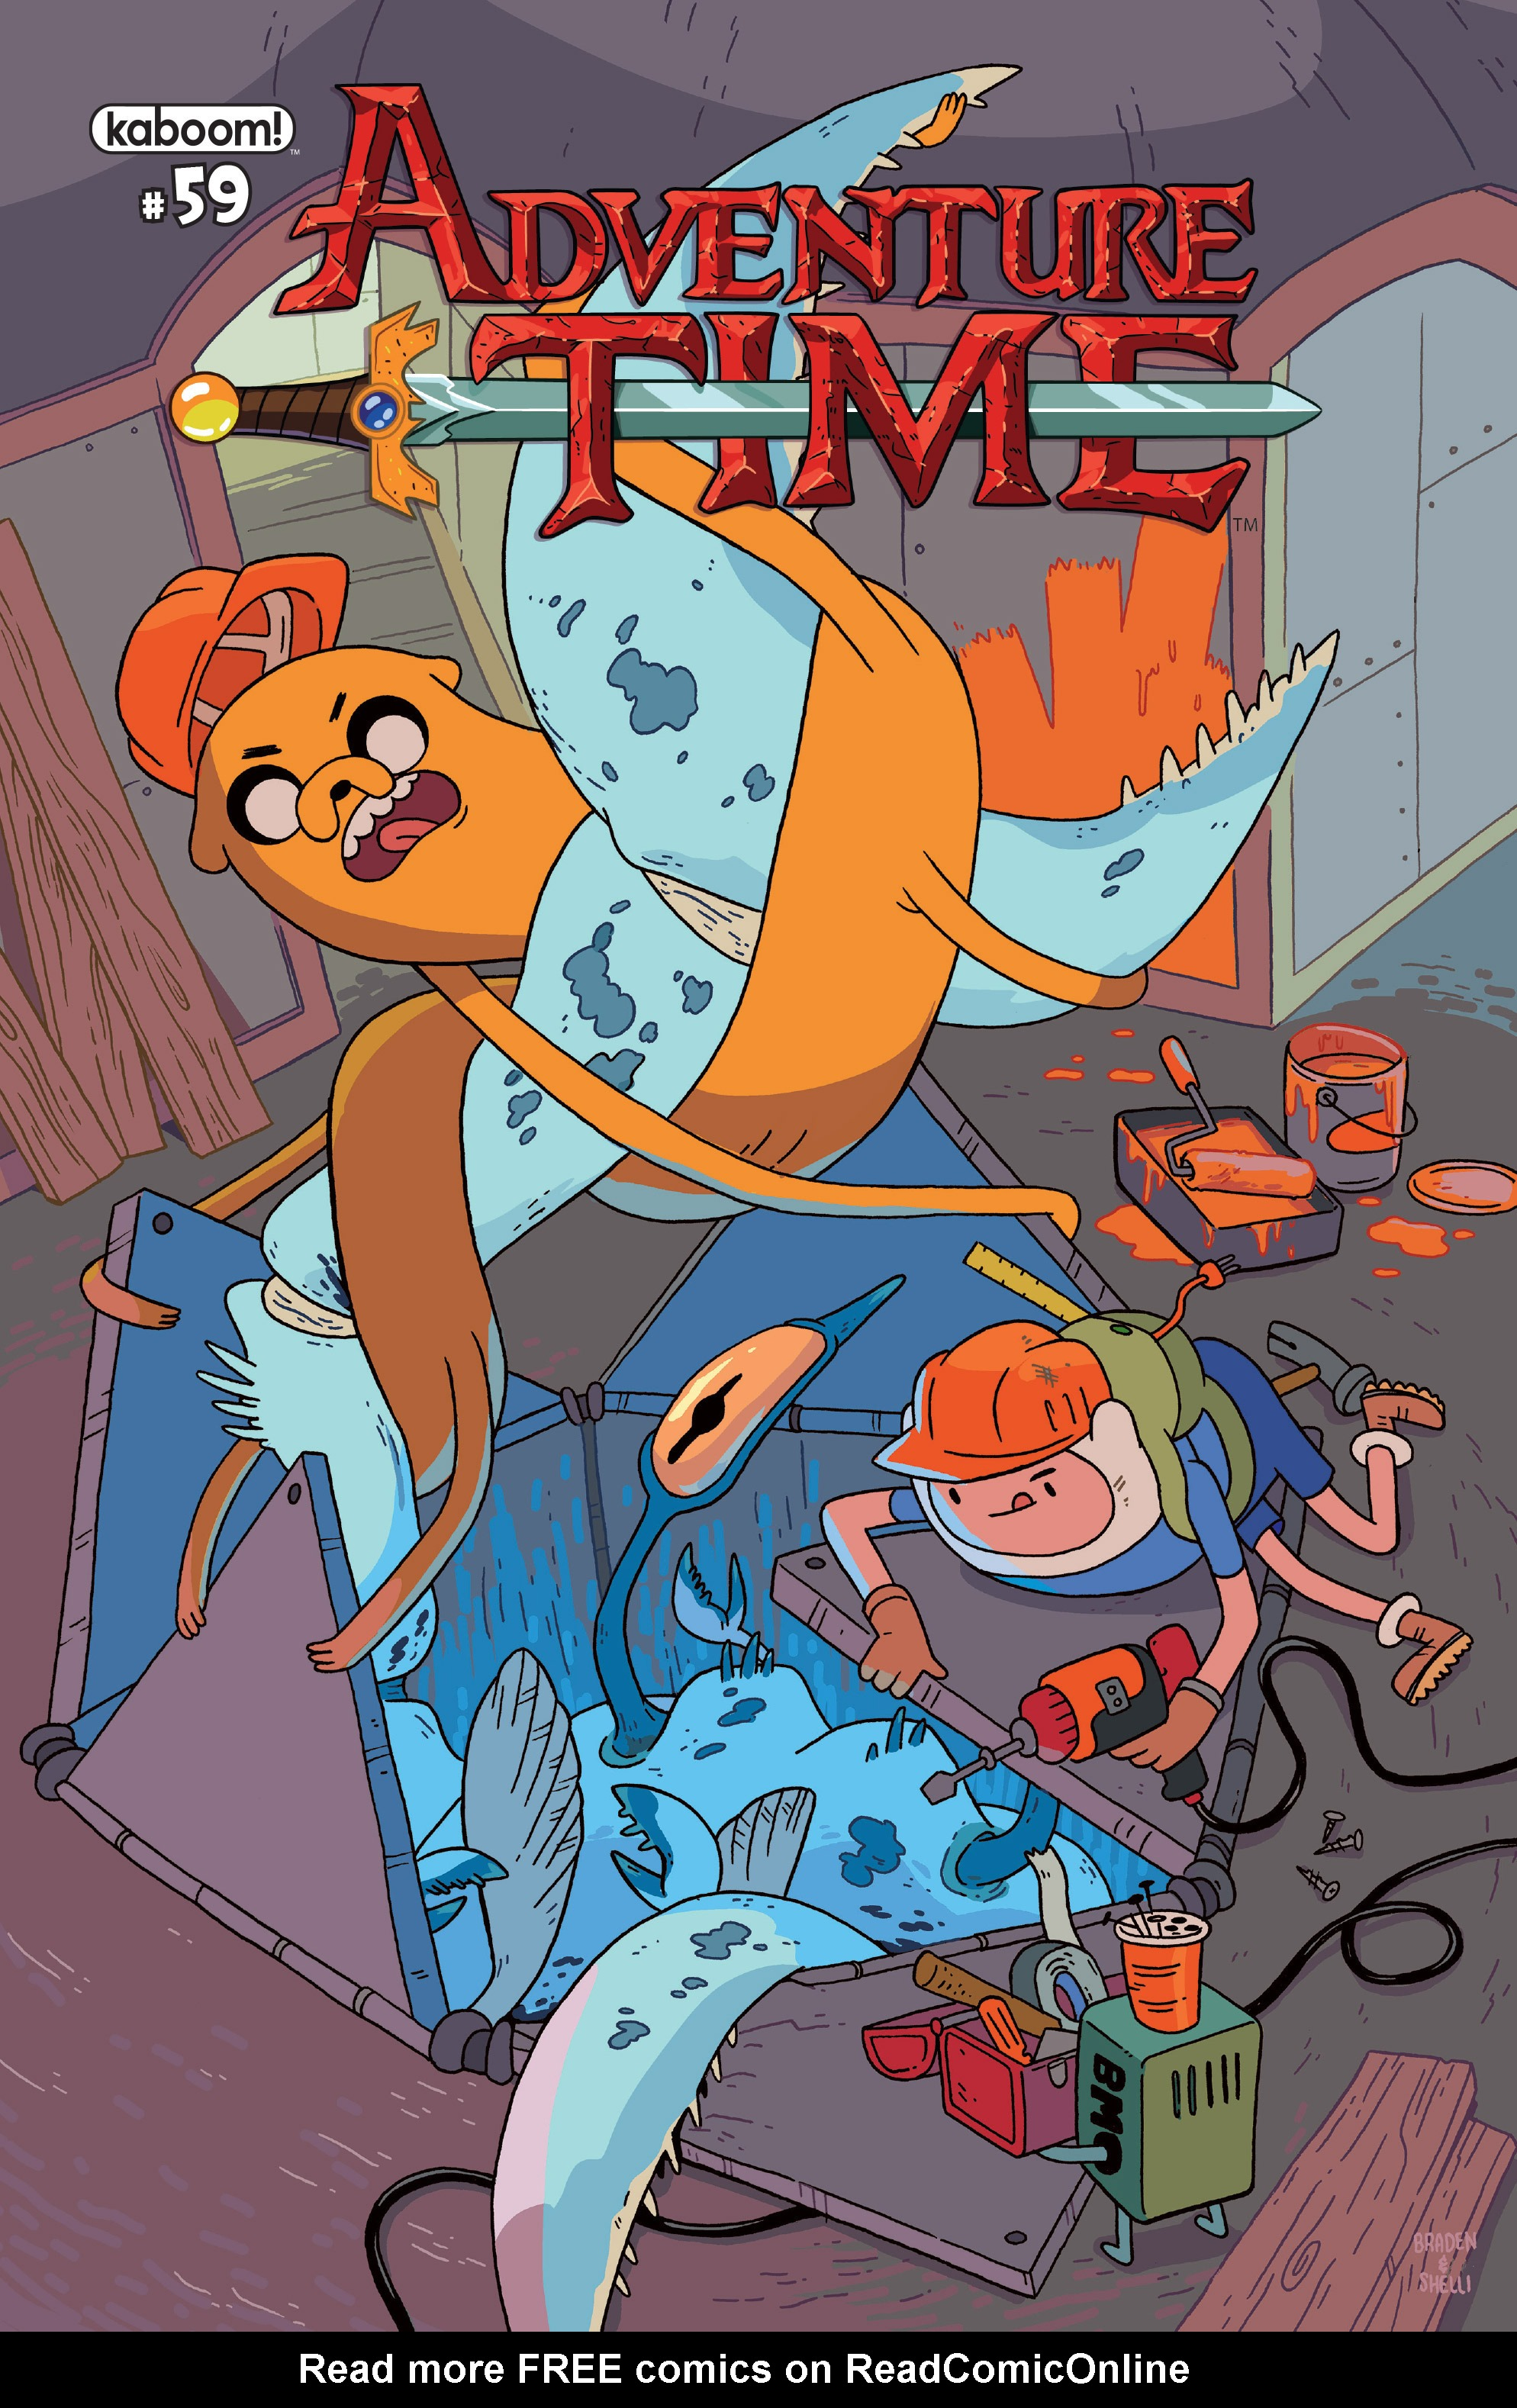 Read online Adventure Time comic -  Issue #59 - 1